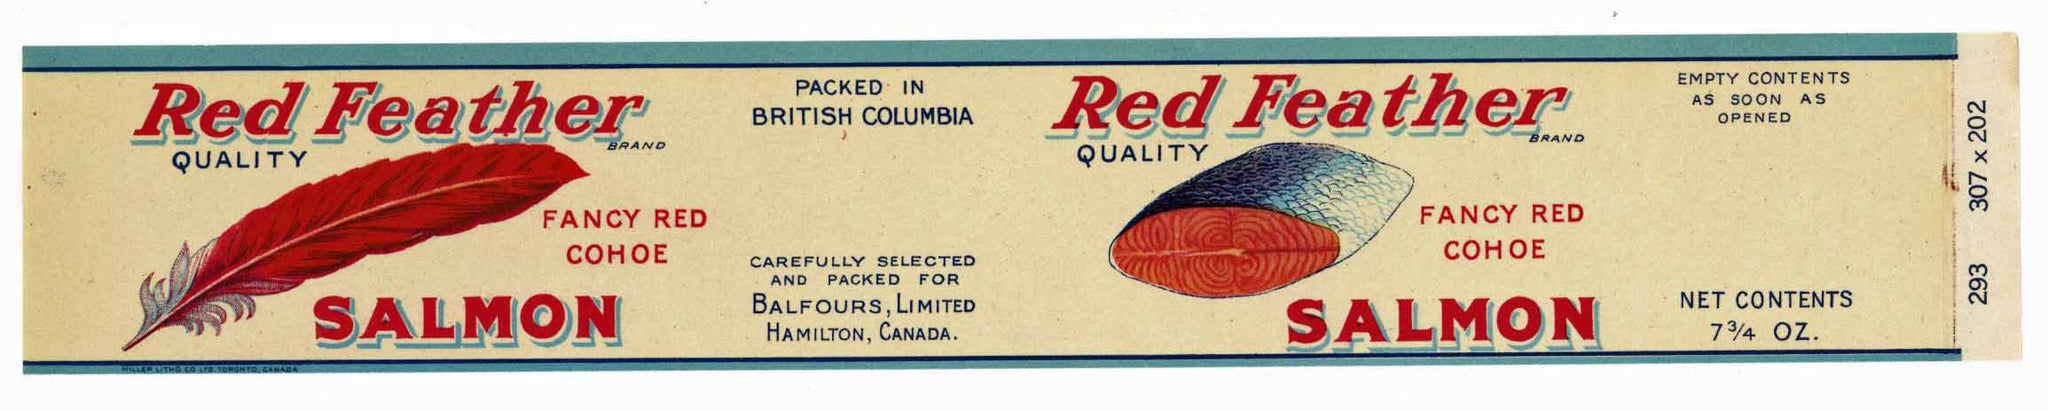 Red Feather Brand Vintage Hamilton Canada Salmon Can Label